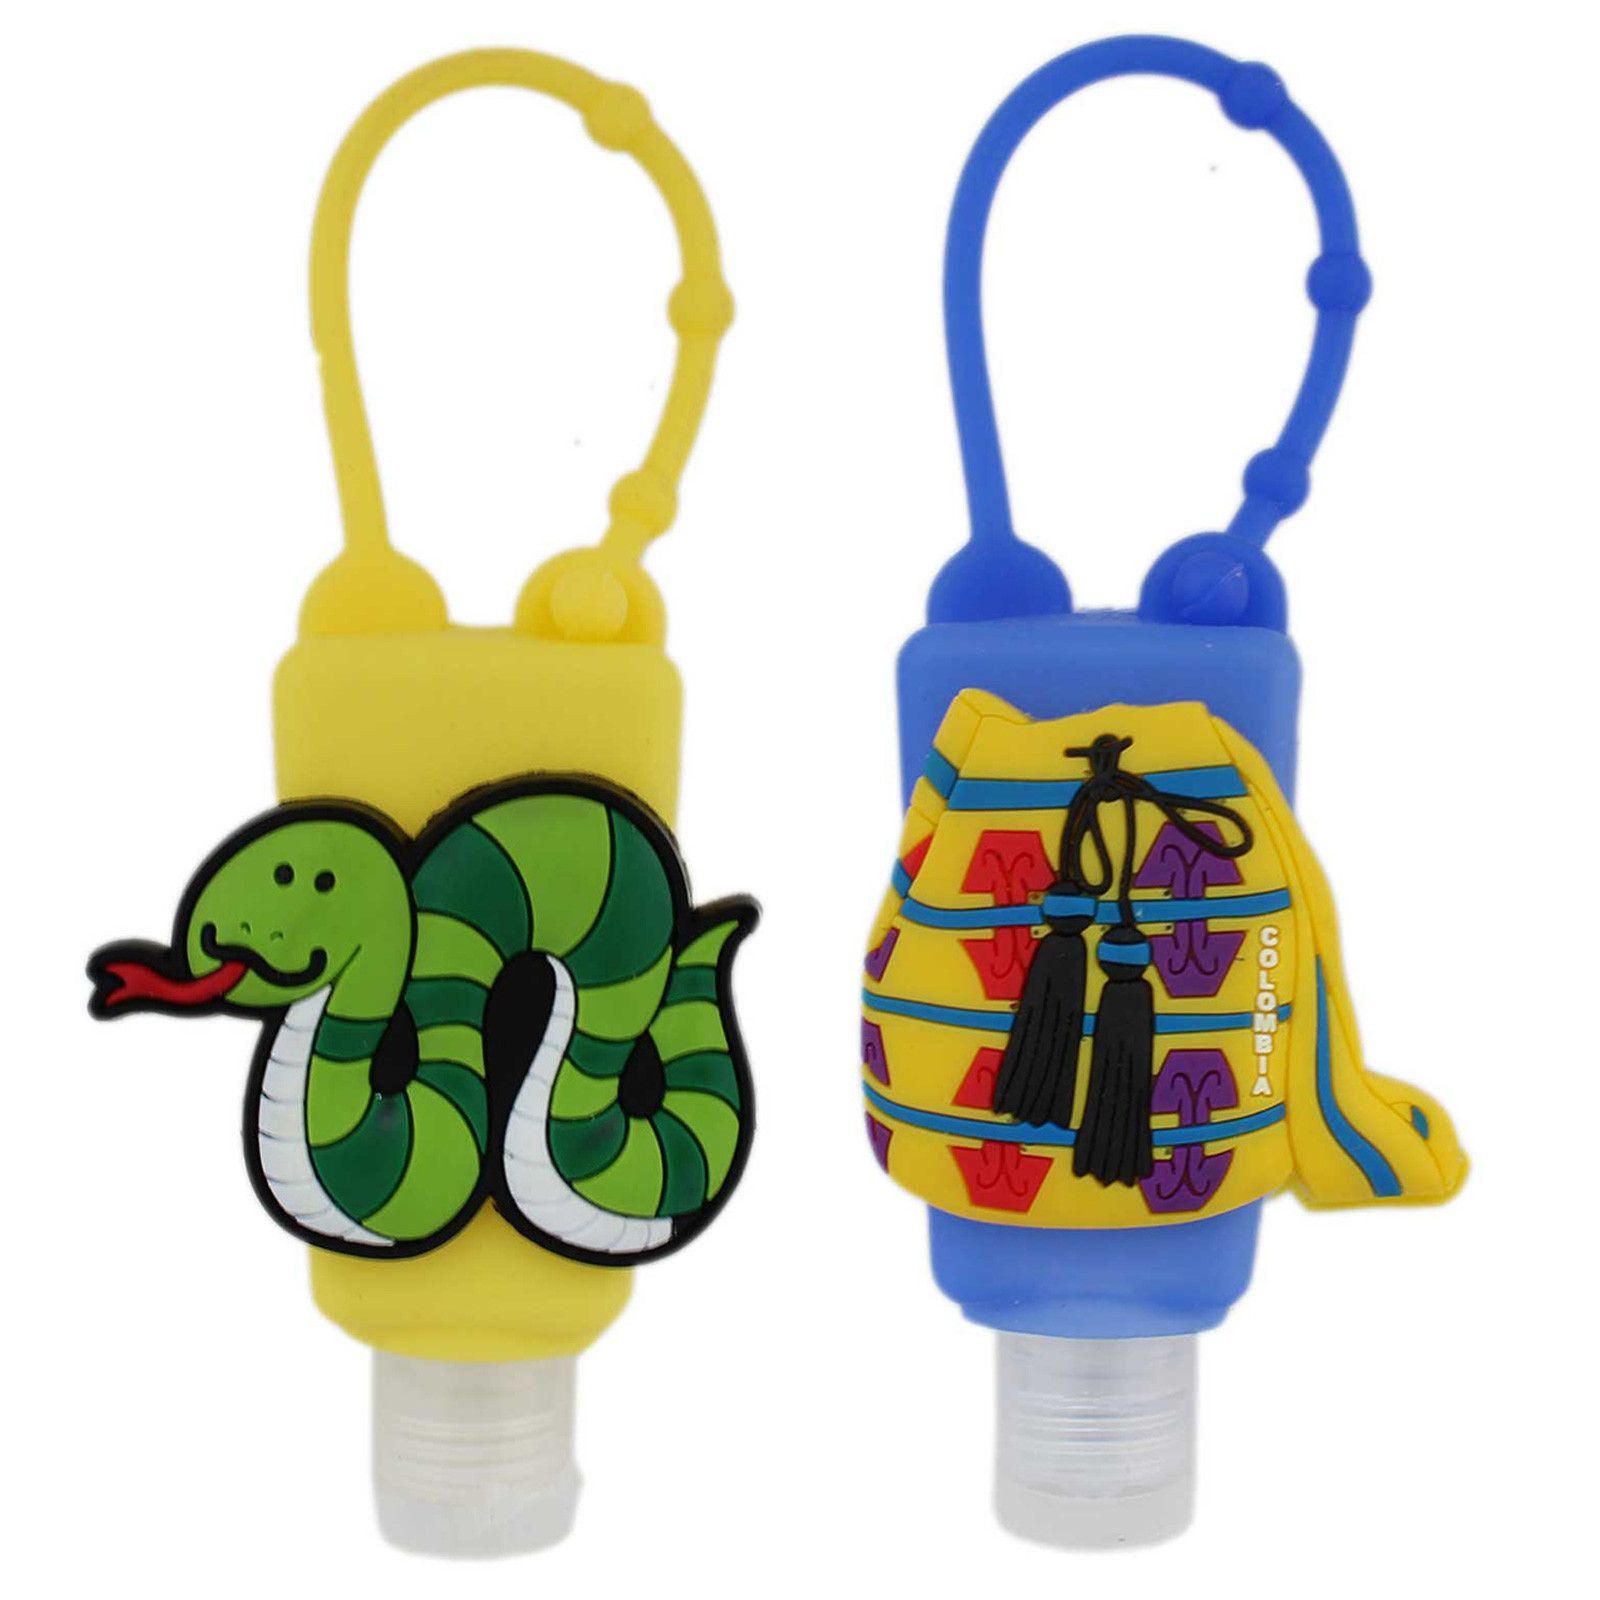 Silicone Hand Sanitizer Holder For Kids Pack Of 2 1p237